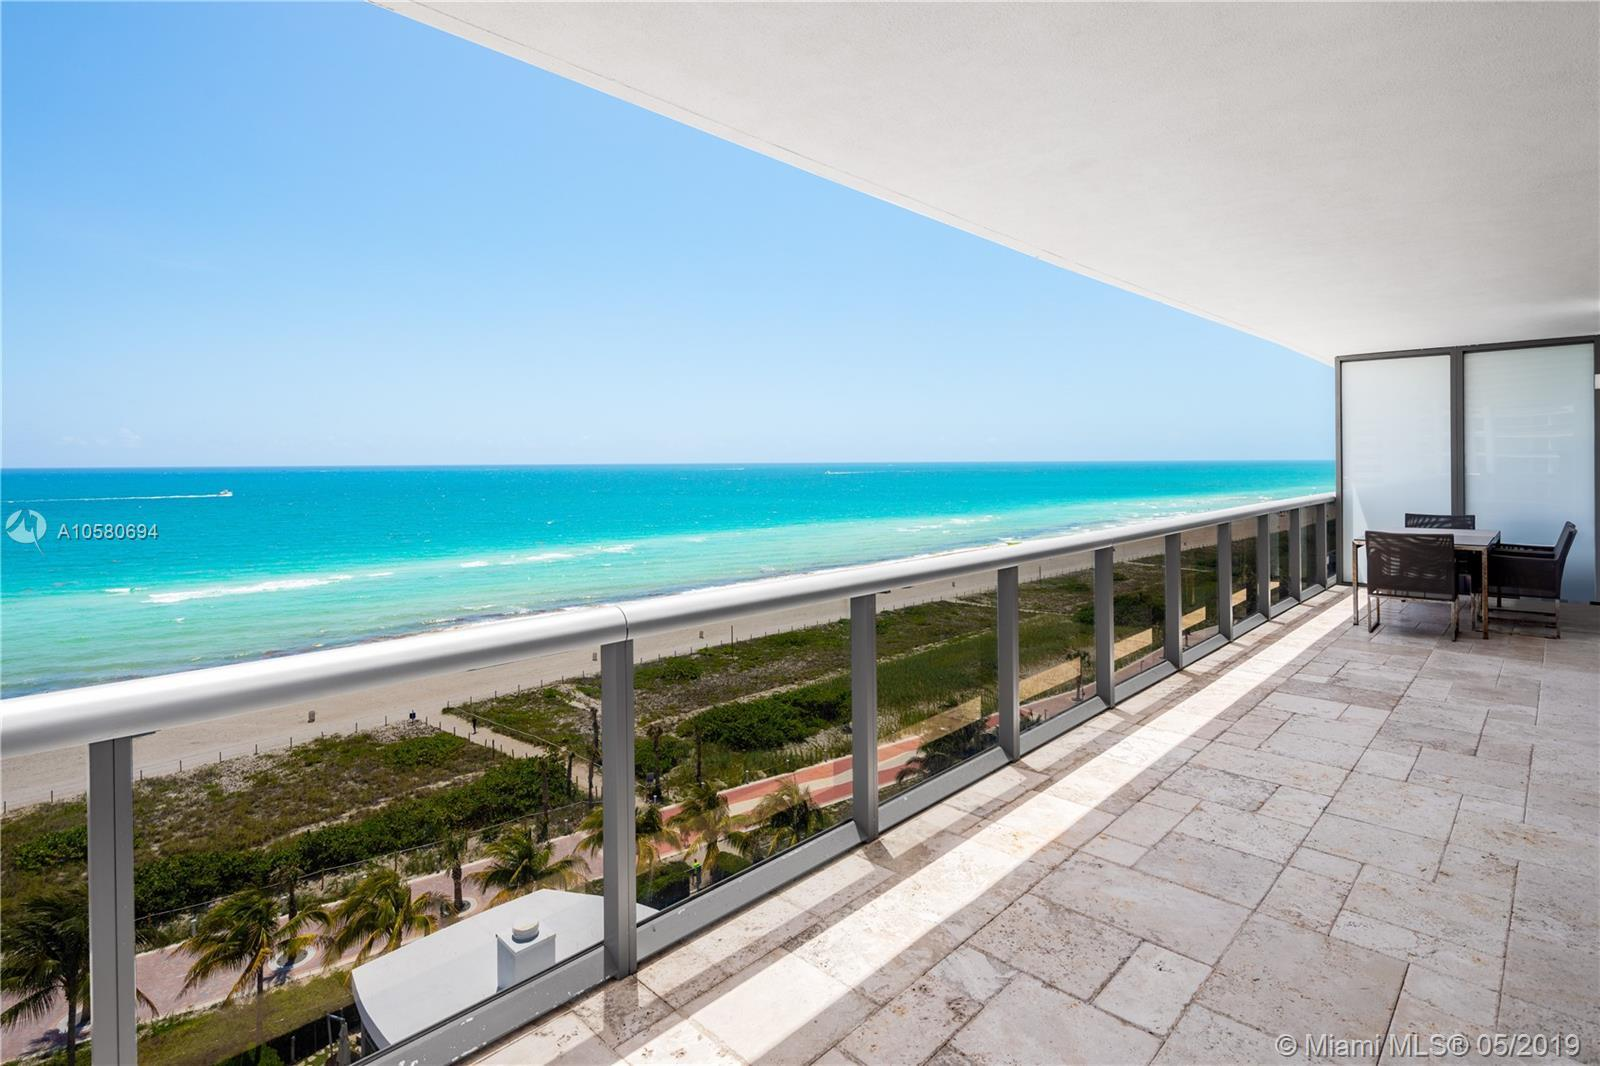 Direct oceanfront, corner unit featuring a 700 SF wrap around balcony with breathtaking views. This